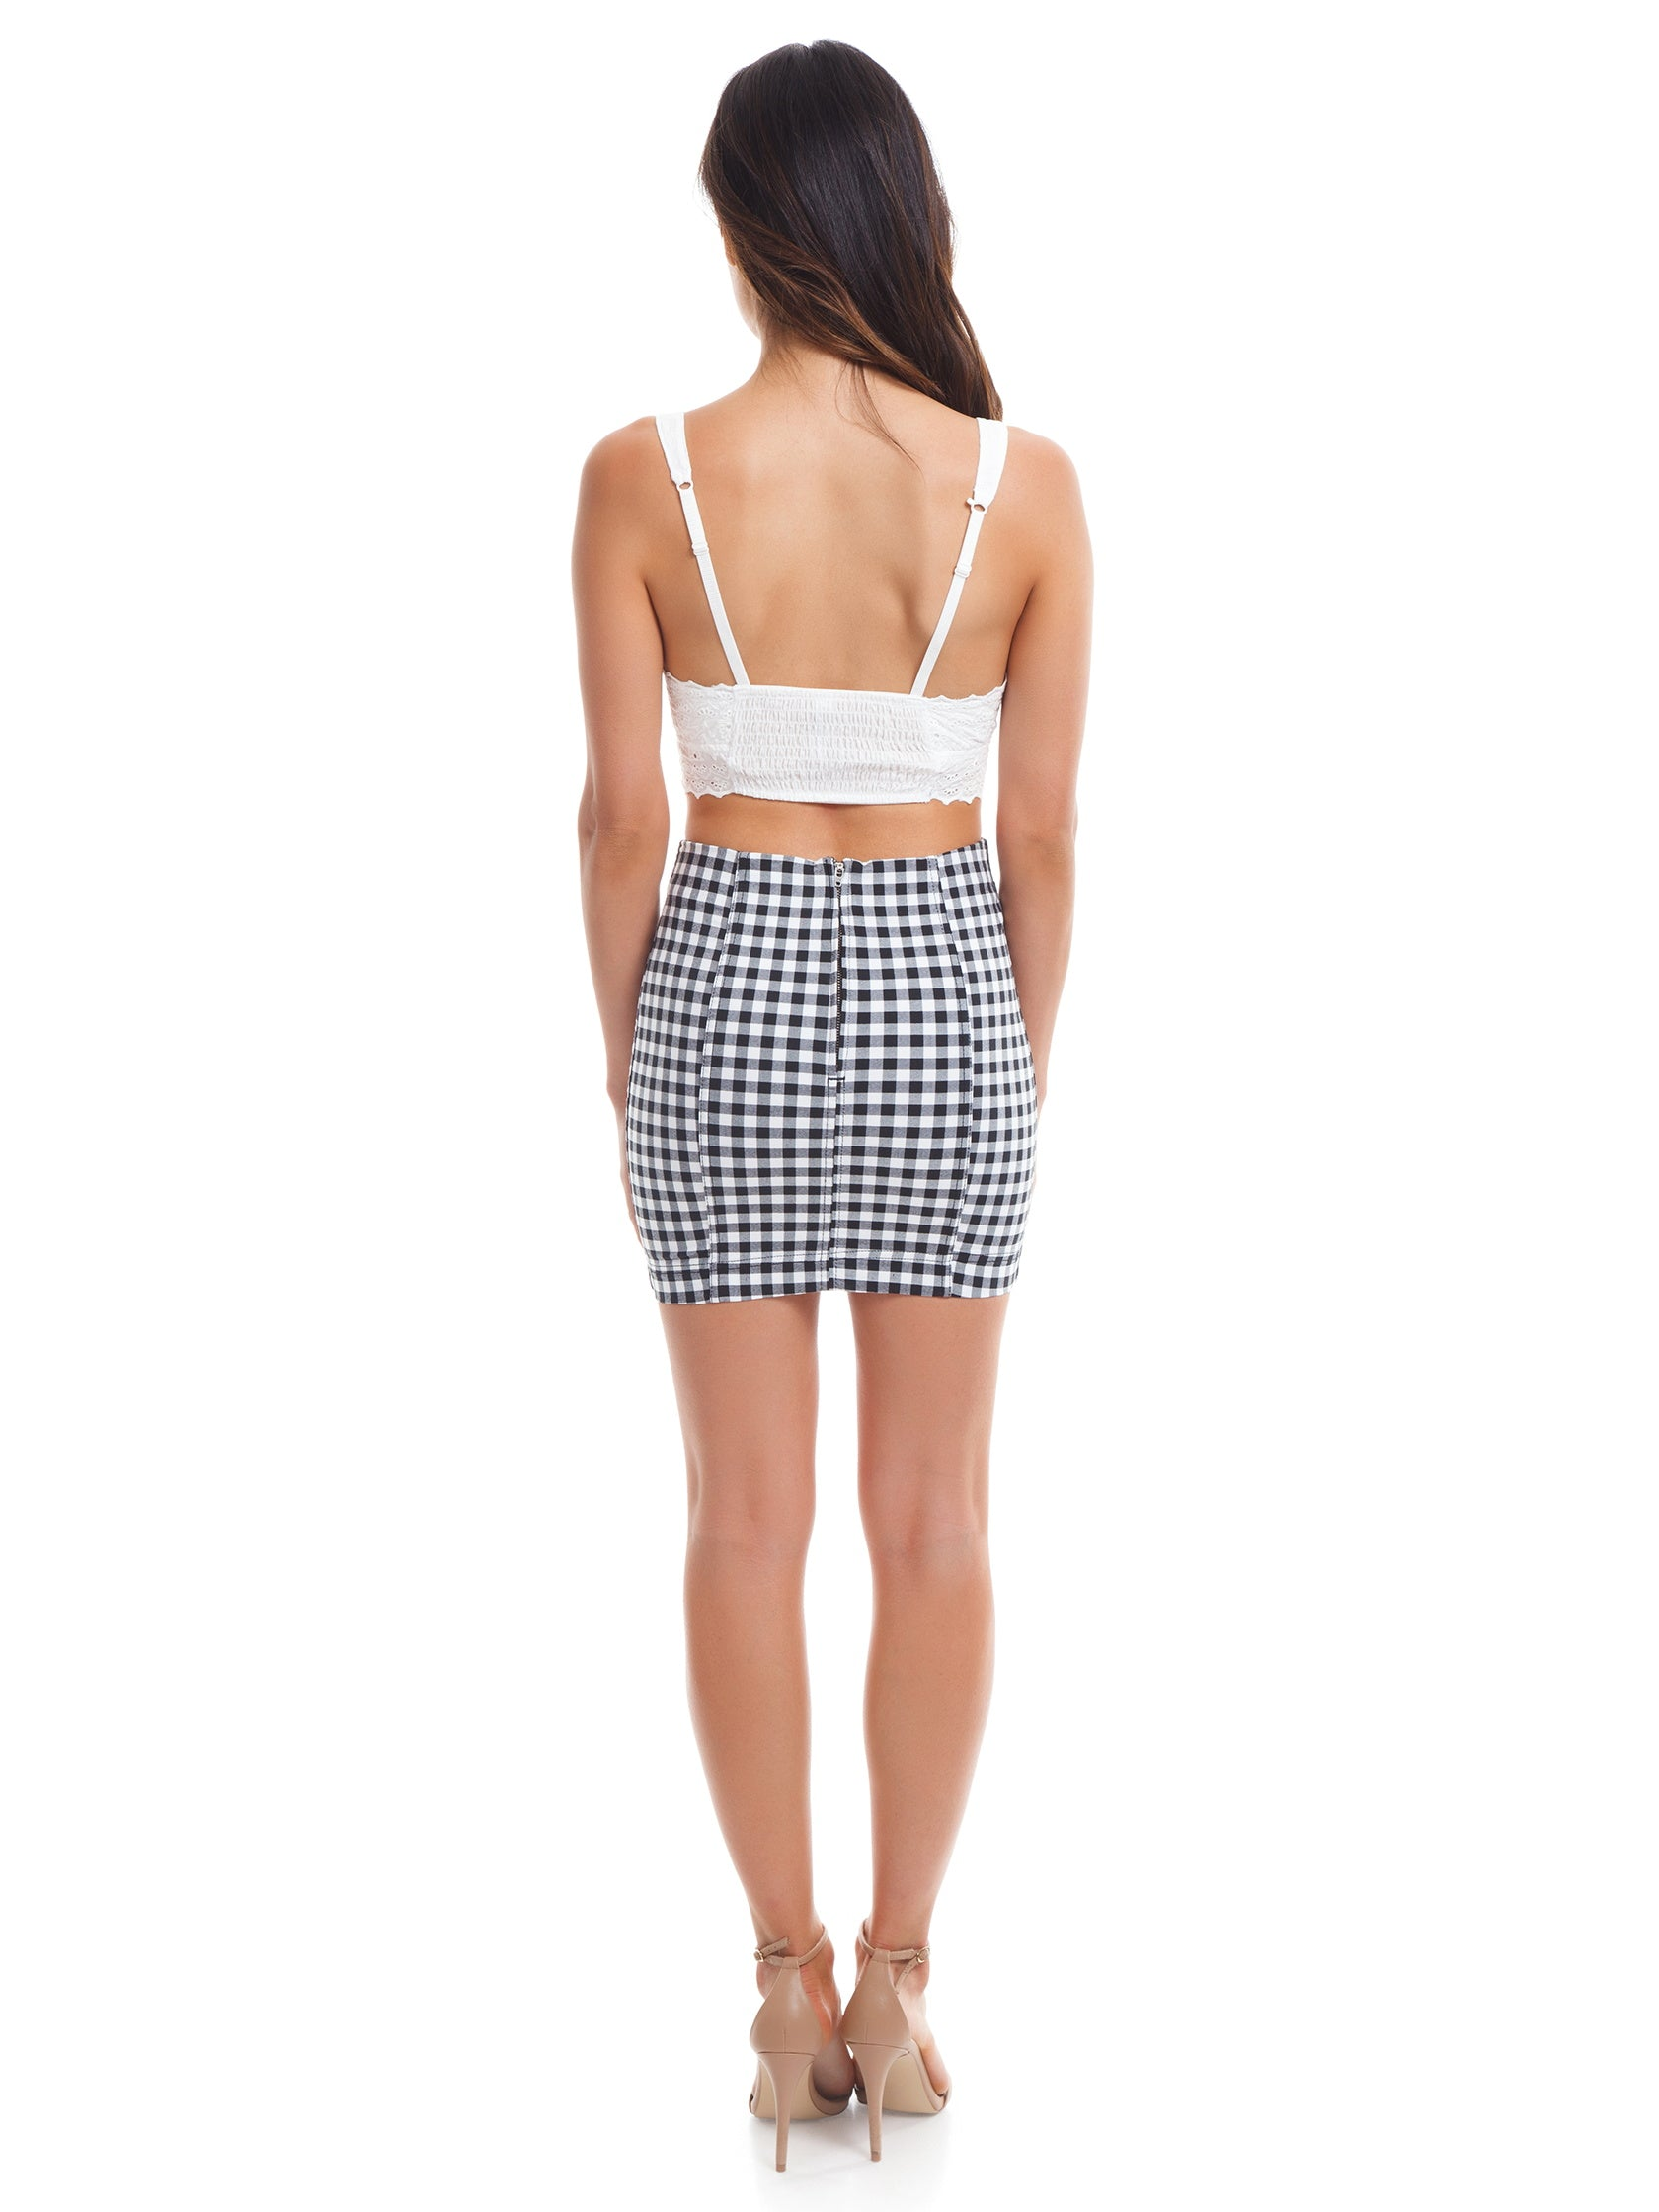 Women wearing a skirt rental from Free People called Modern Femme Gingham Mini Skirt